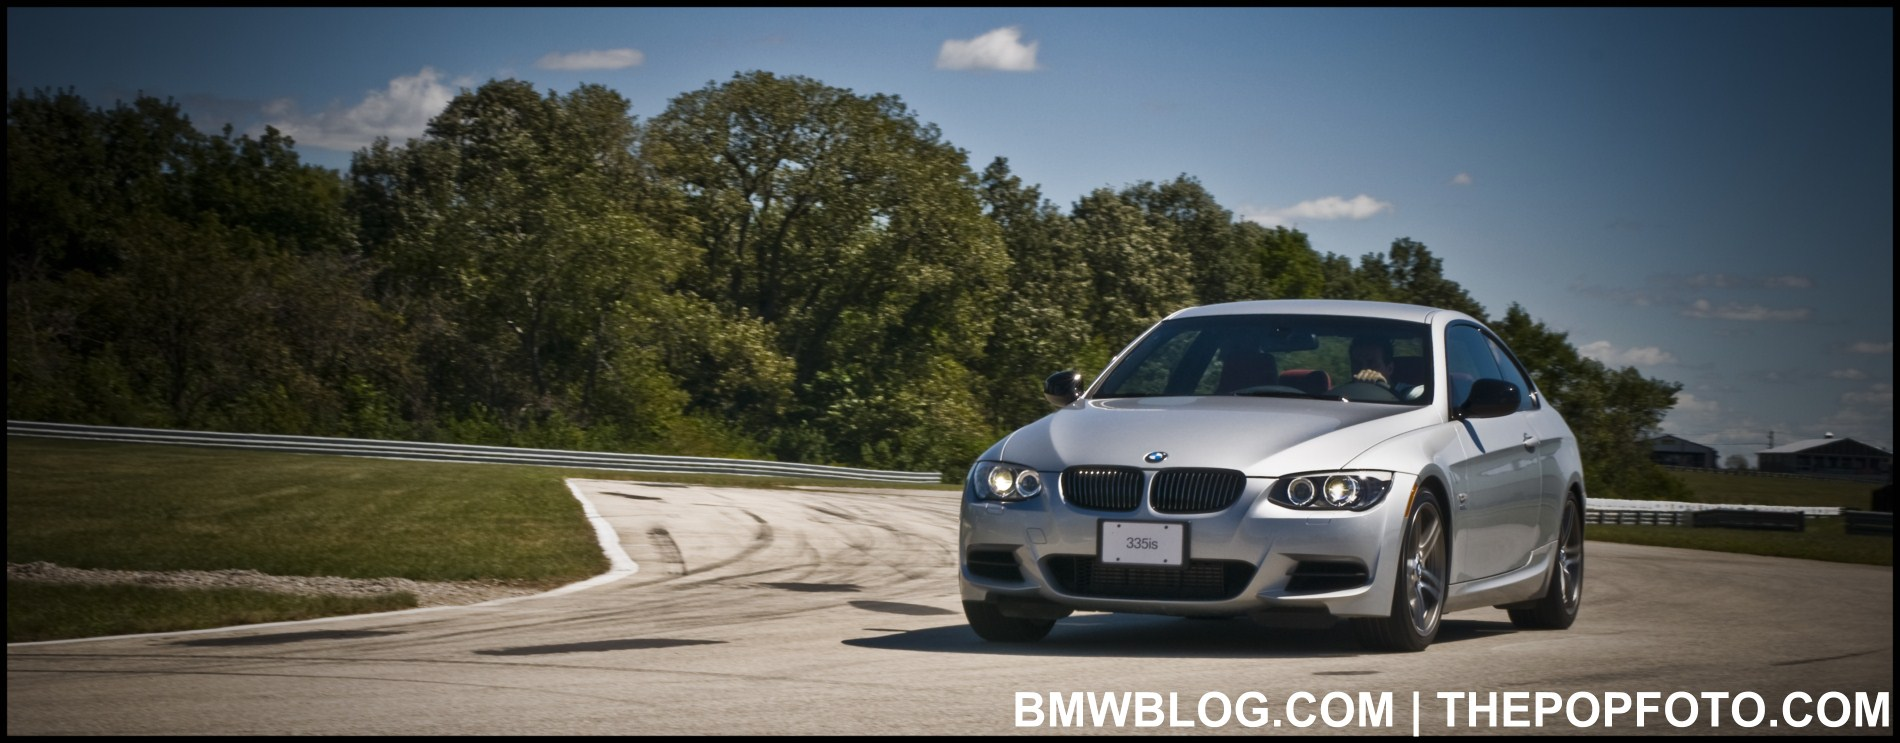 2010 bmw 335is review 44